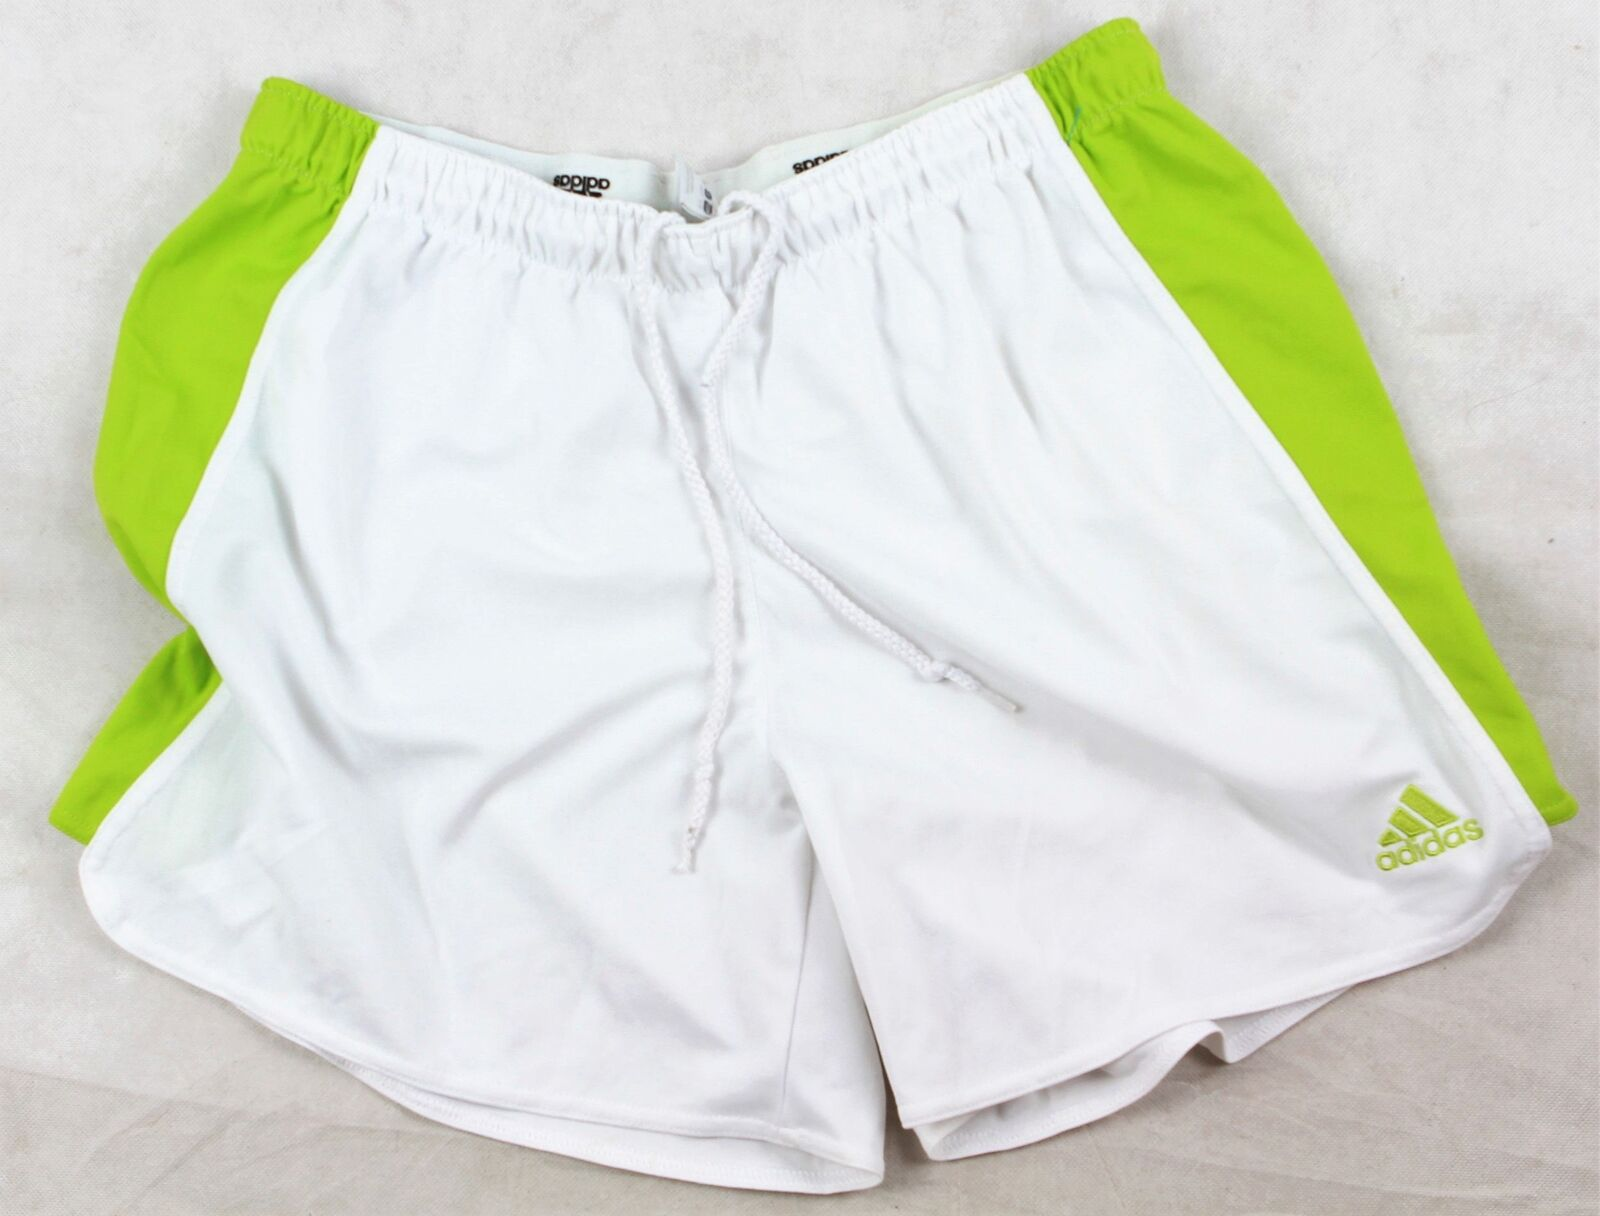 ADIDAS Climalite   Football Sports SHORTS White Green  Size L   160 Y